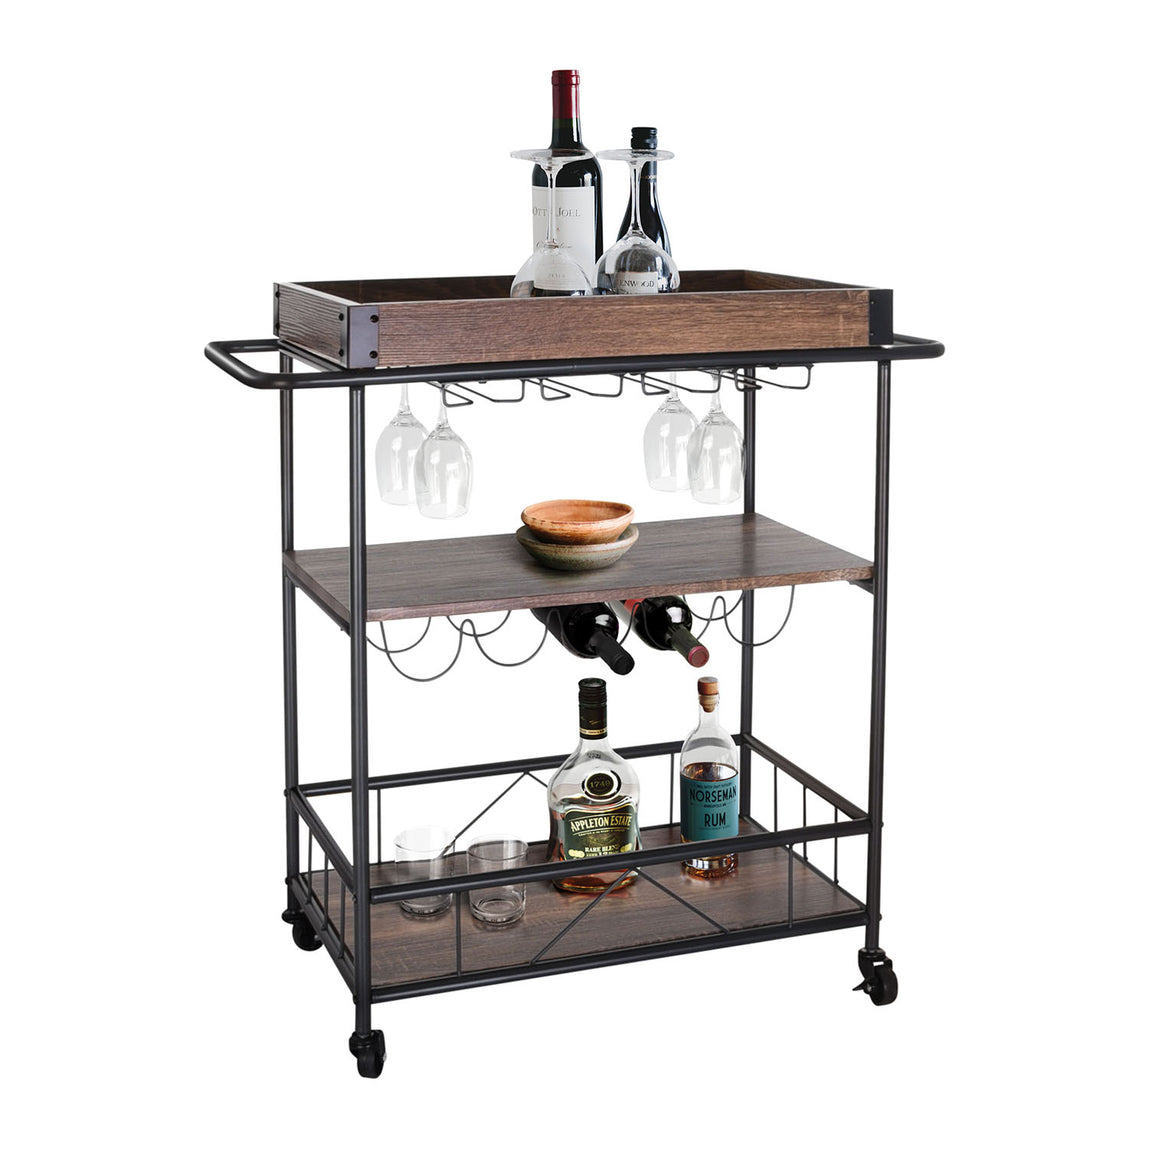 Zenvida Bar Cart Mobile Kitchen Serving Cart Tray Portable Rustic Indu Roadbikeoutlet